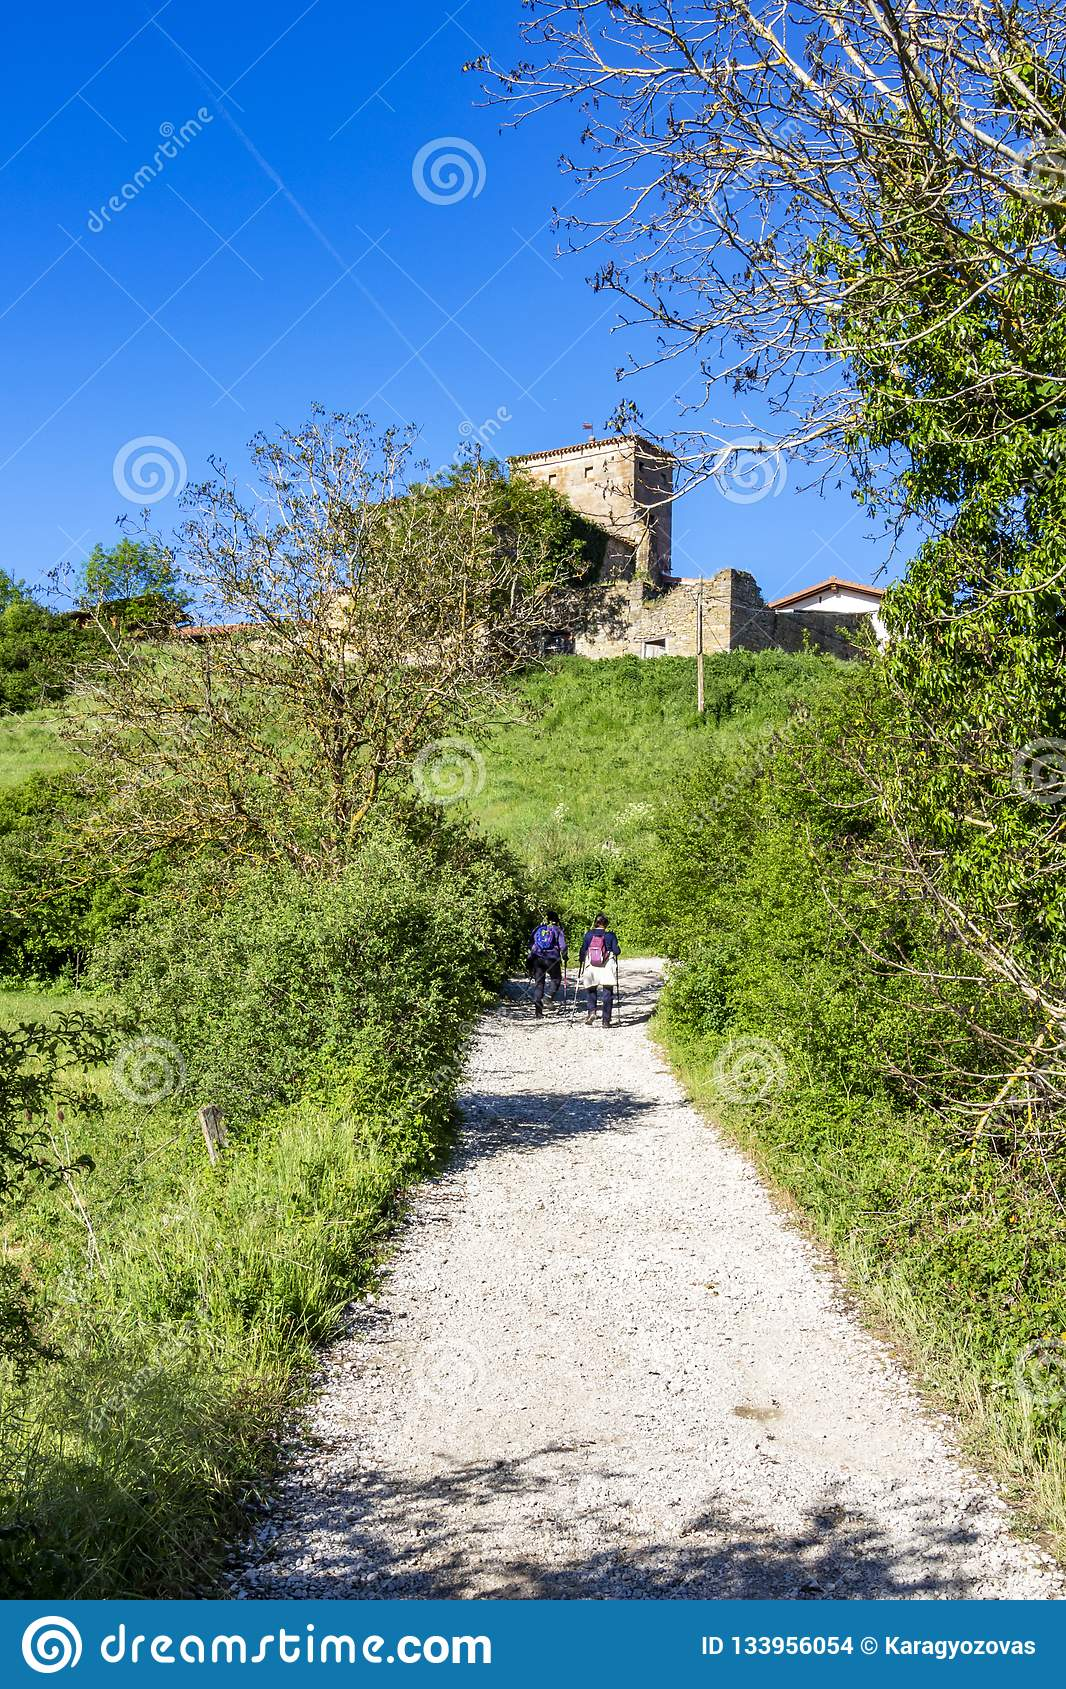 Rear view of two female pilgrims on the Way of St. James, Camino de Santiago at Akerreta, Spain